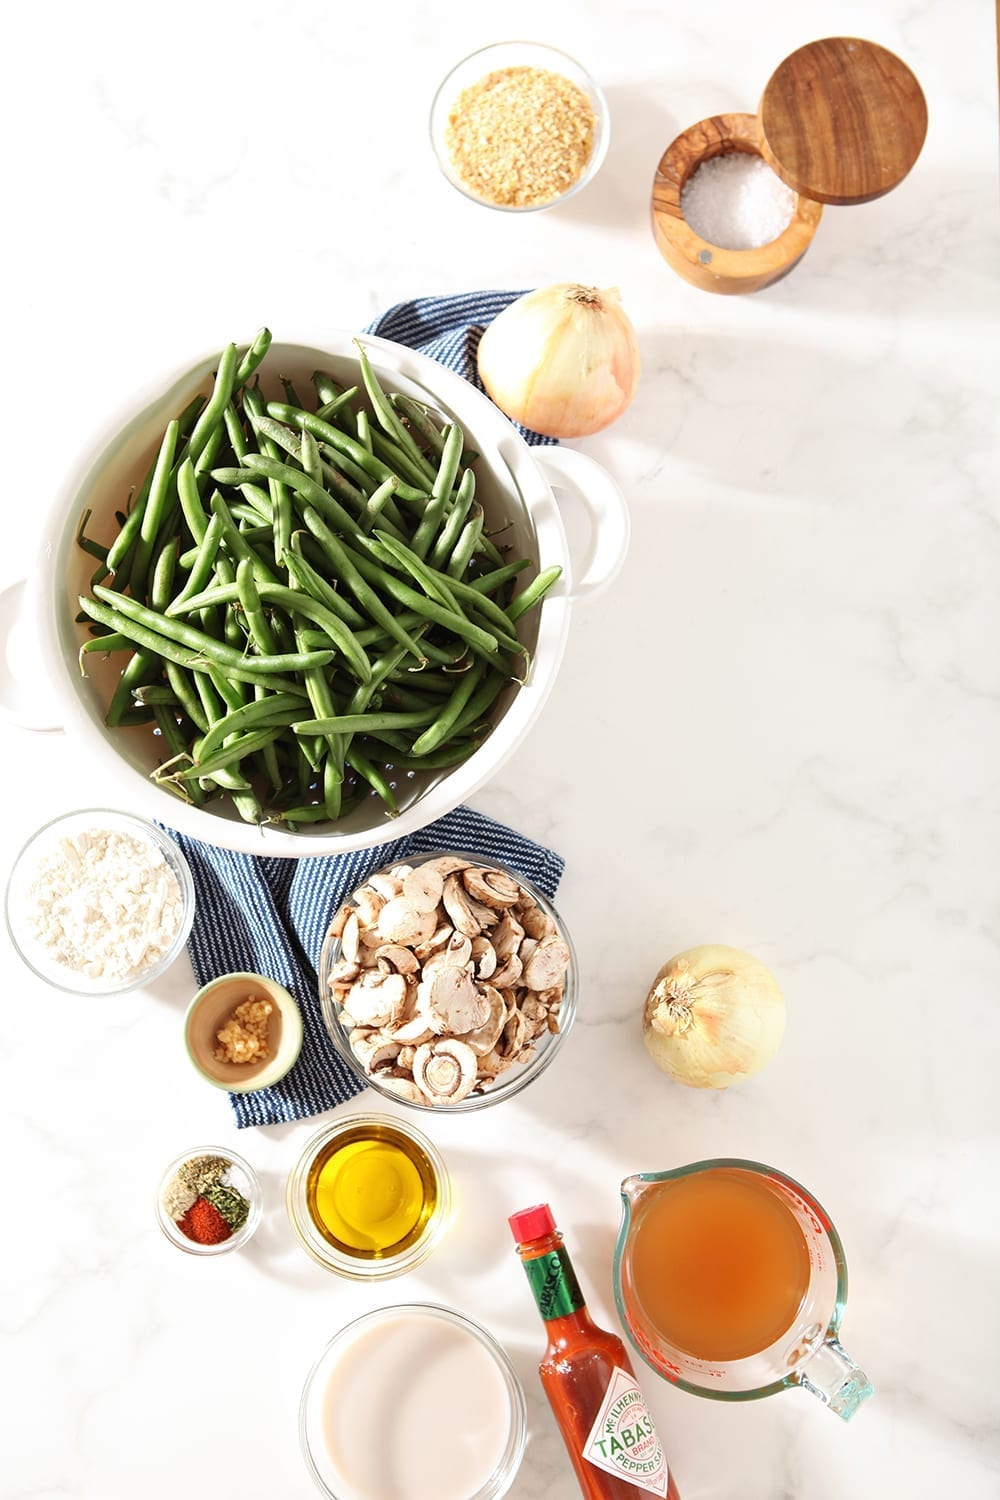 Green beans, mushrooms and all the other ingredients are shown from above